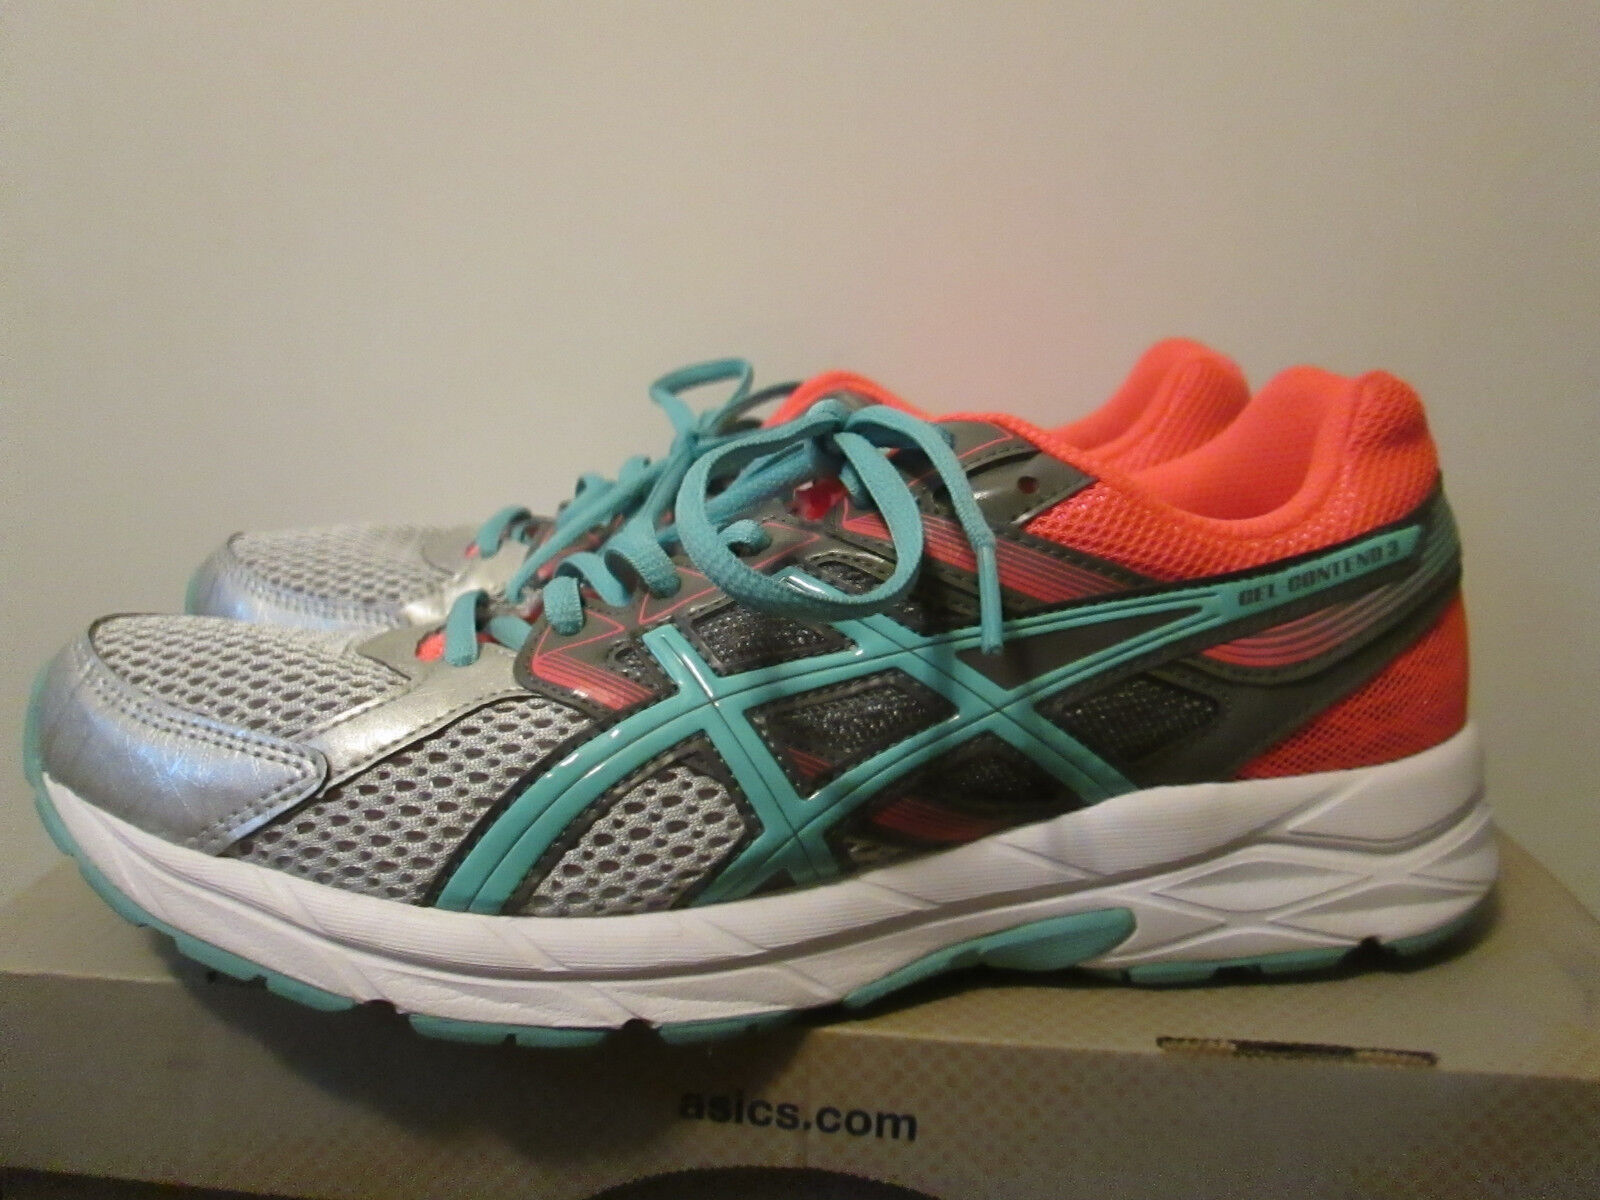 Asics Gel Contend 3 Silver Pool bluee Flash Coral Running Training shoes Size 9.5